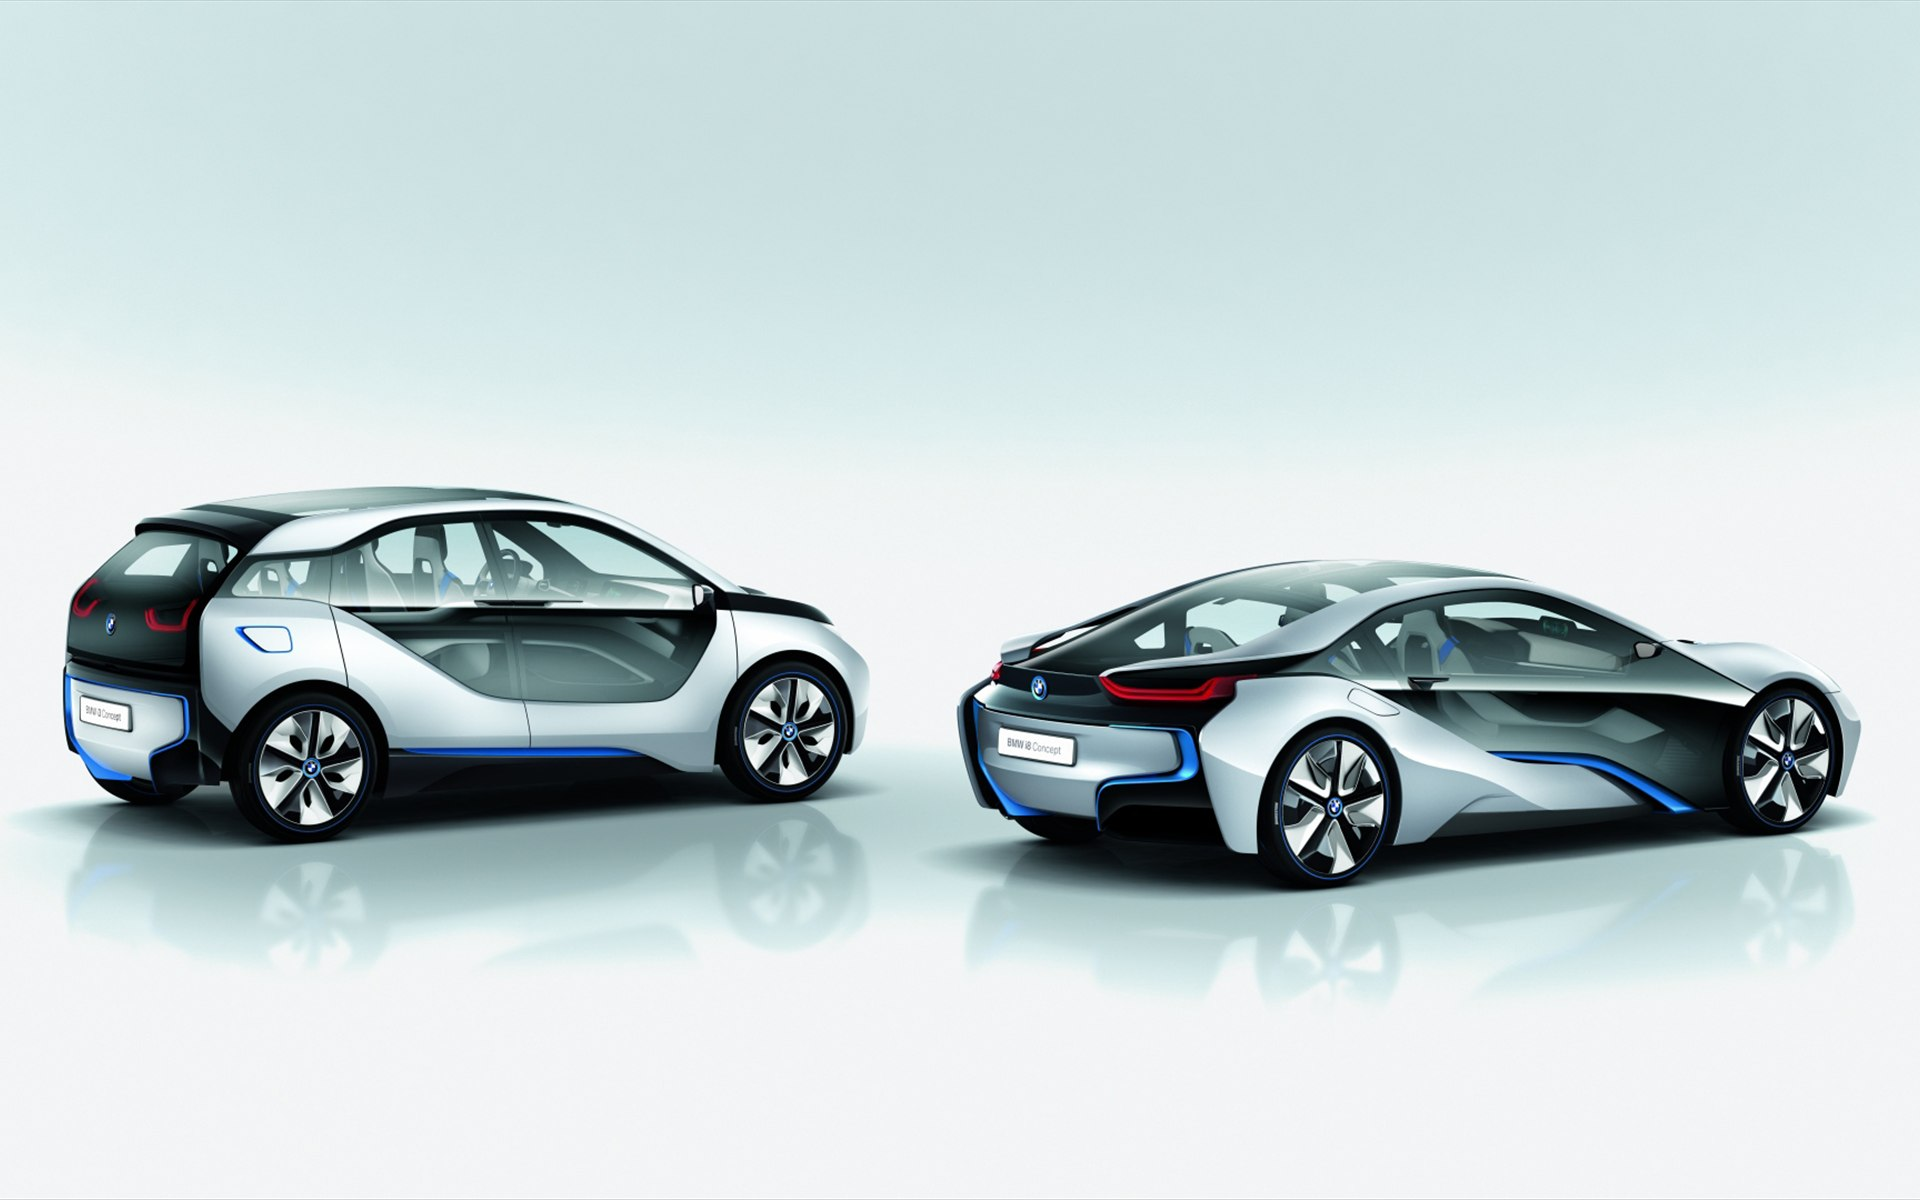 1920x1200 - BMW i3 Concept Wallpapers 22